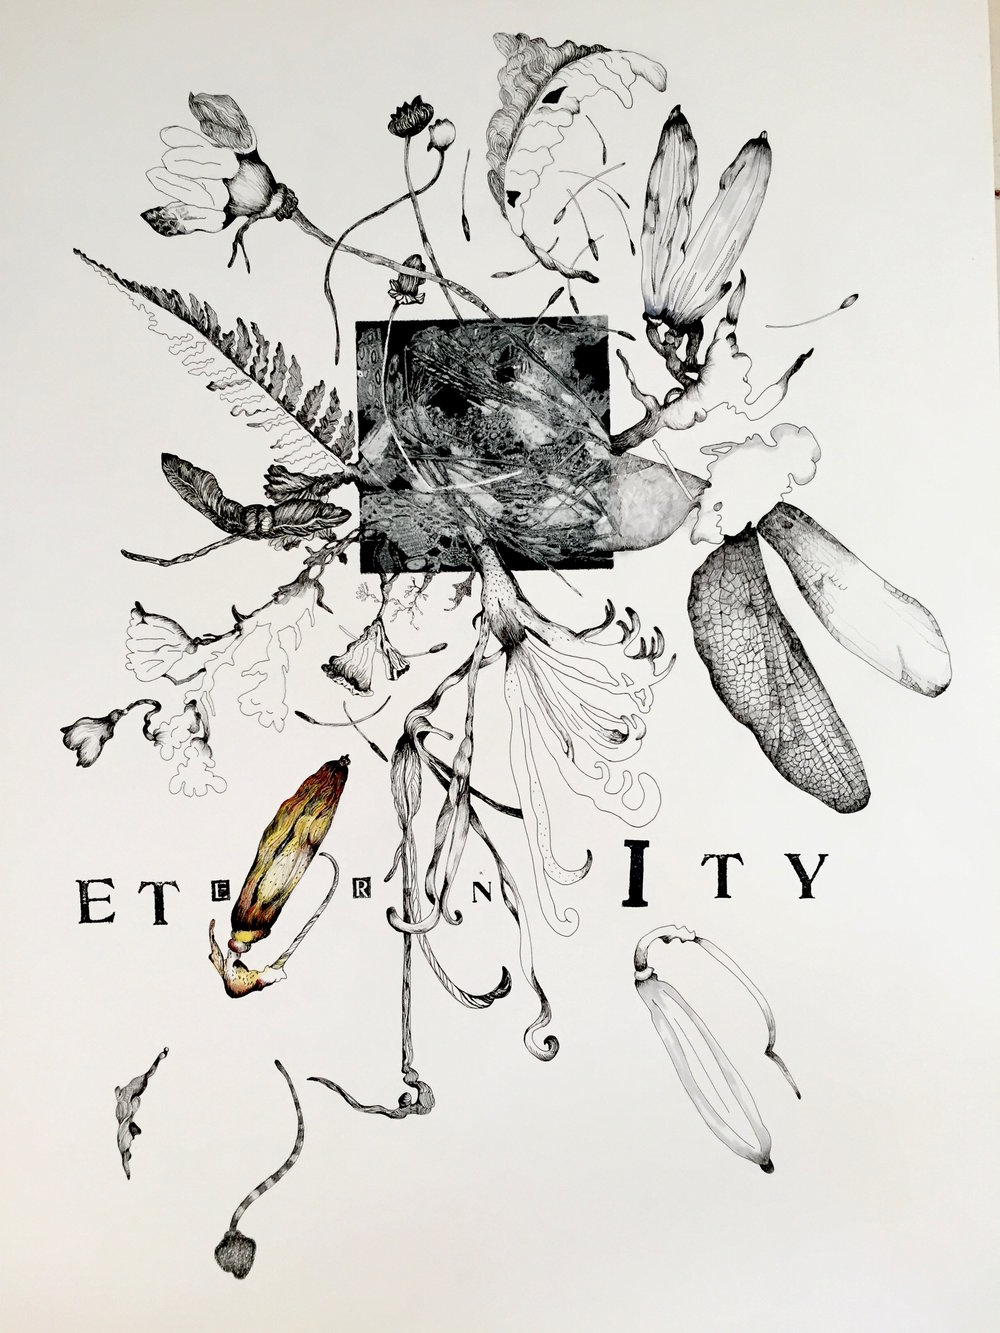 Eternity   23 x 30 inches  mixed media  image: Susan Webster  hand stamped text: Stuart Kestenbaum  2015